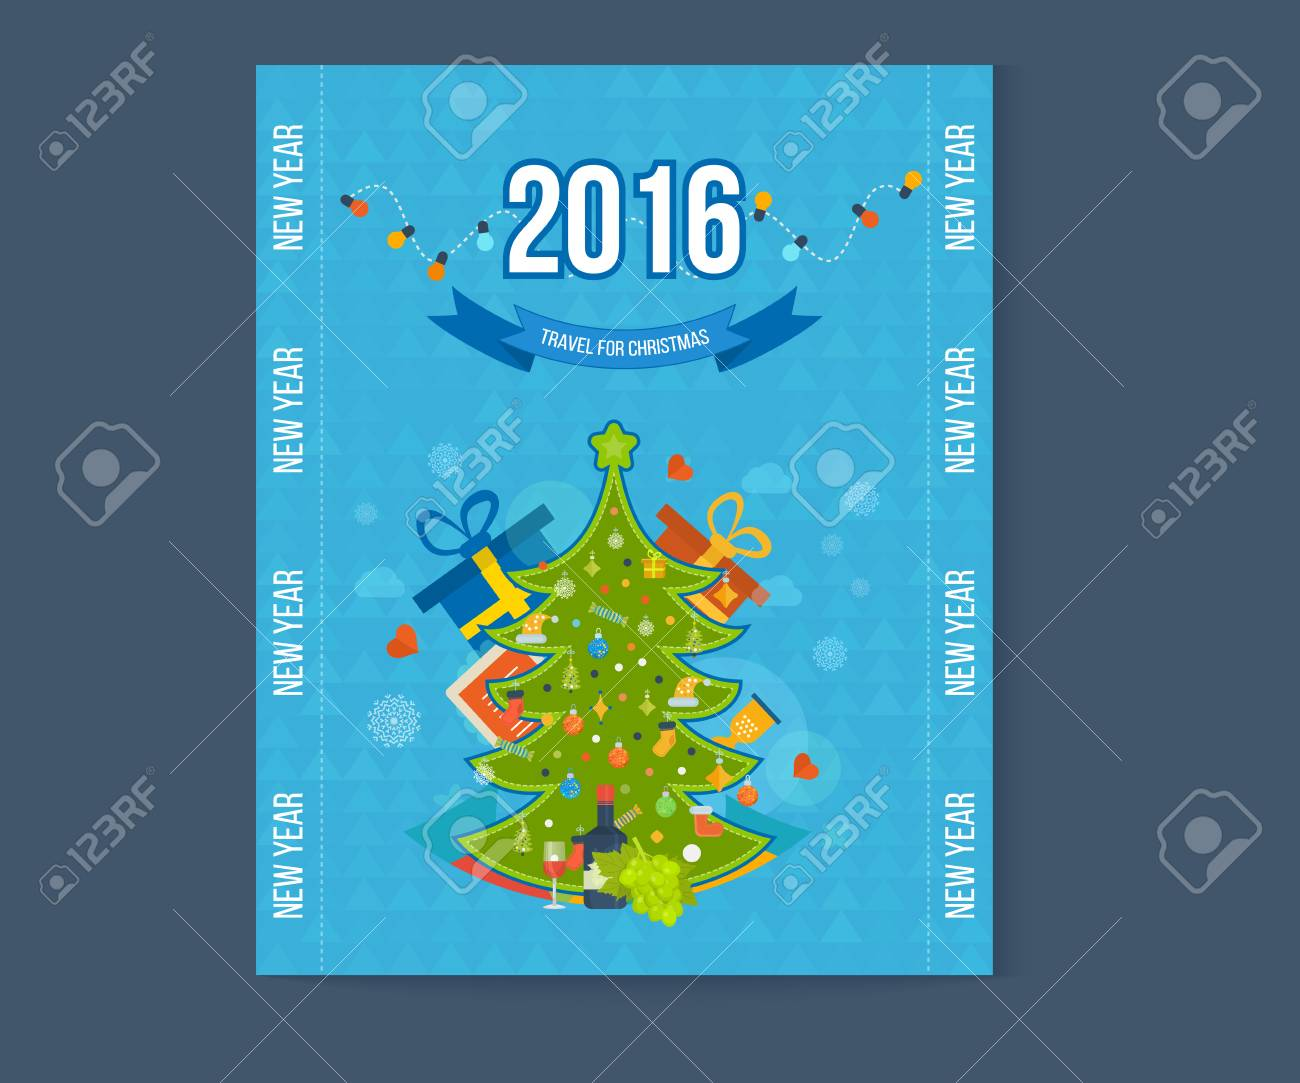 Invitation Card With Winter City Life And Space For Text Merry